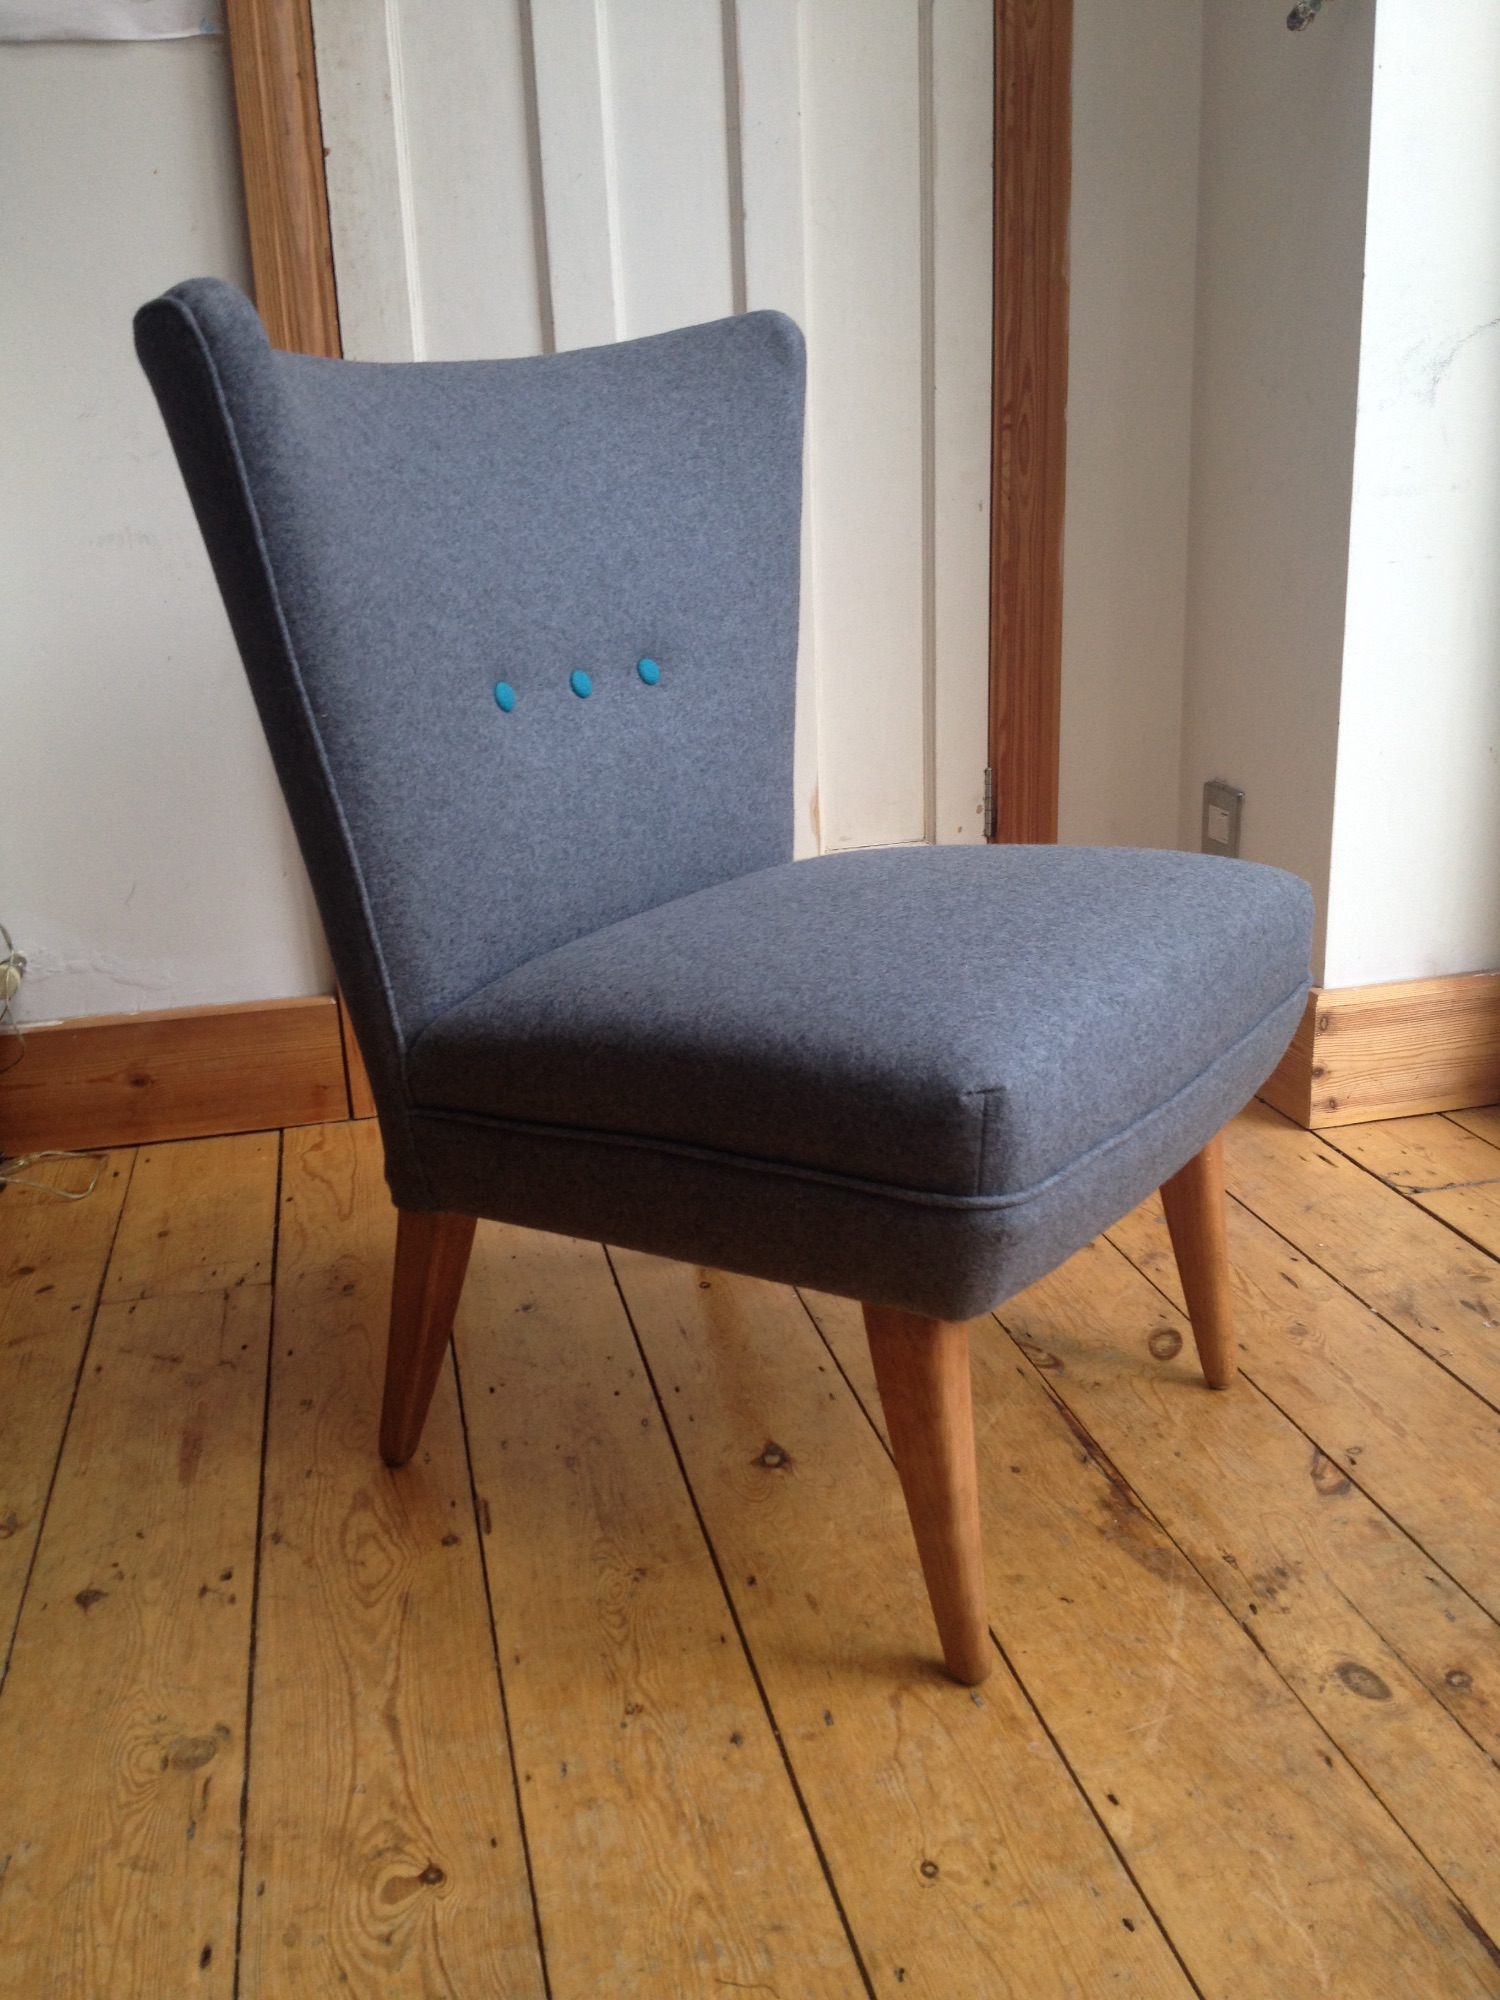 Howard Keith chair by Spring Upholstery Brighton in grey wool felt fabric with contrasting turquoise buttons